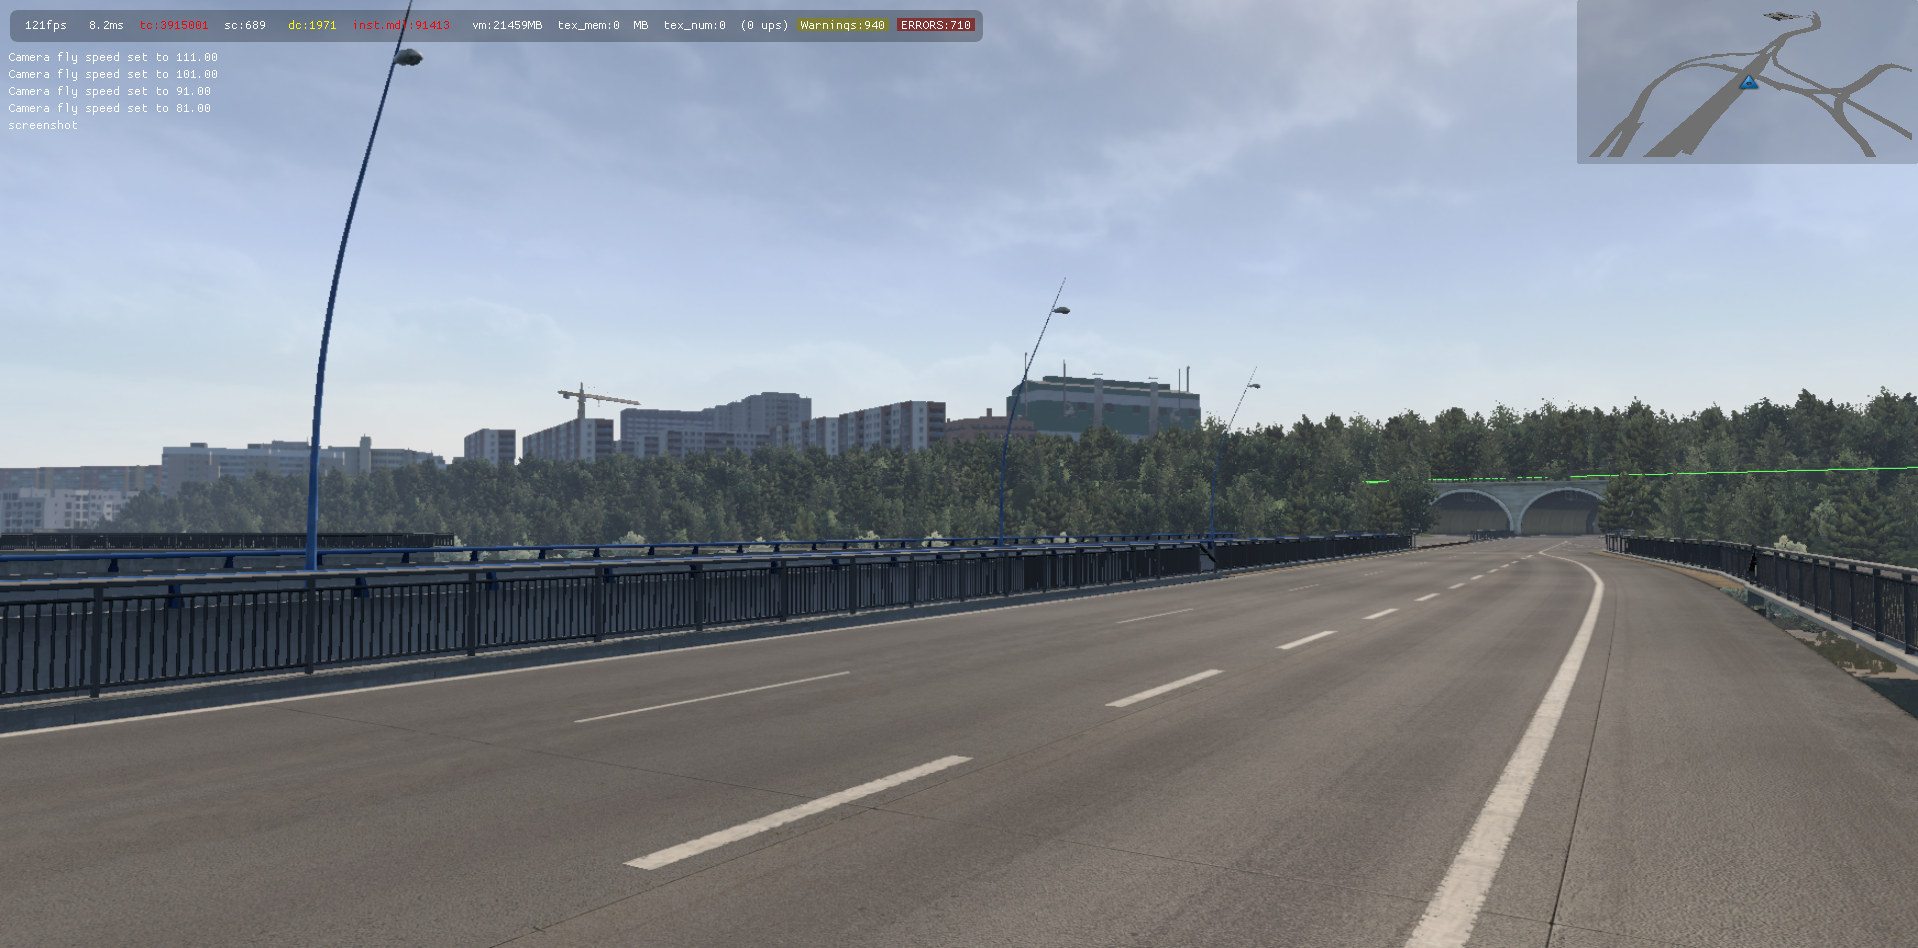 ets2_20210628_203805_00.png